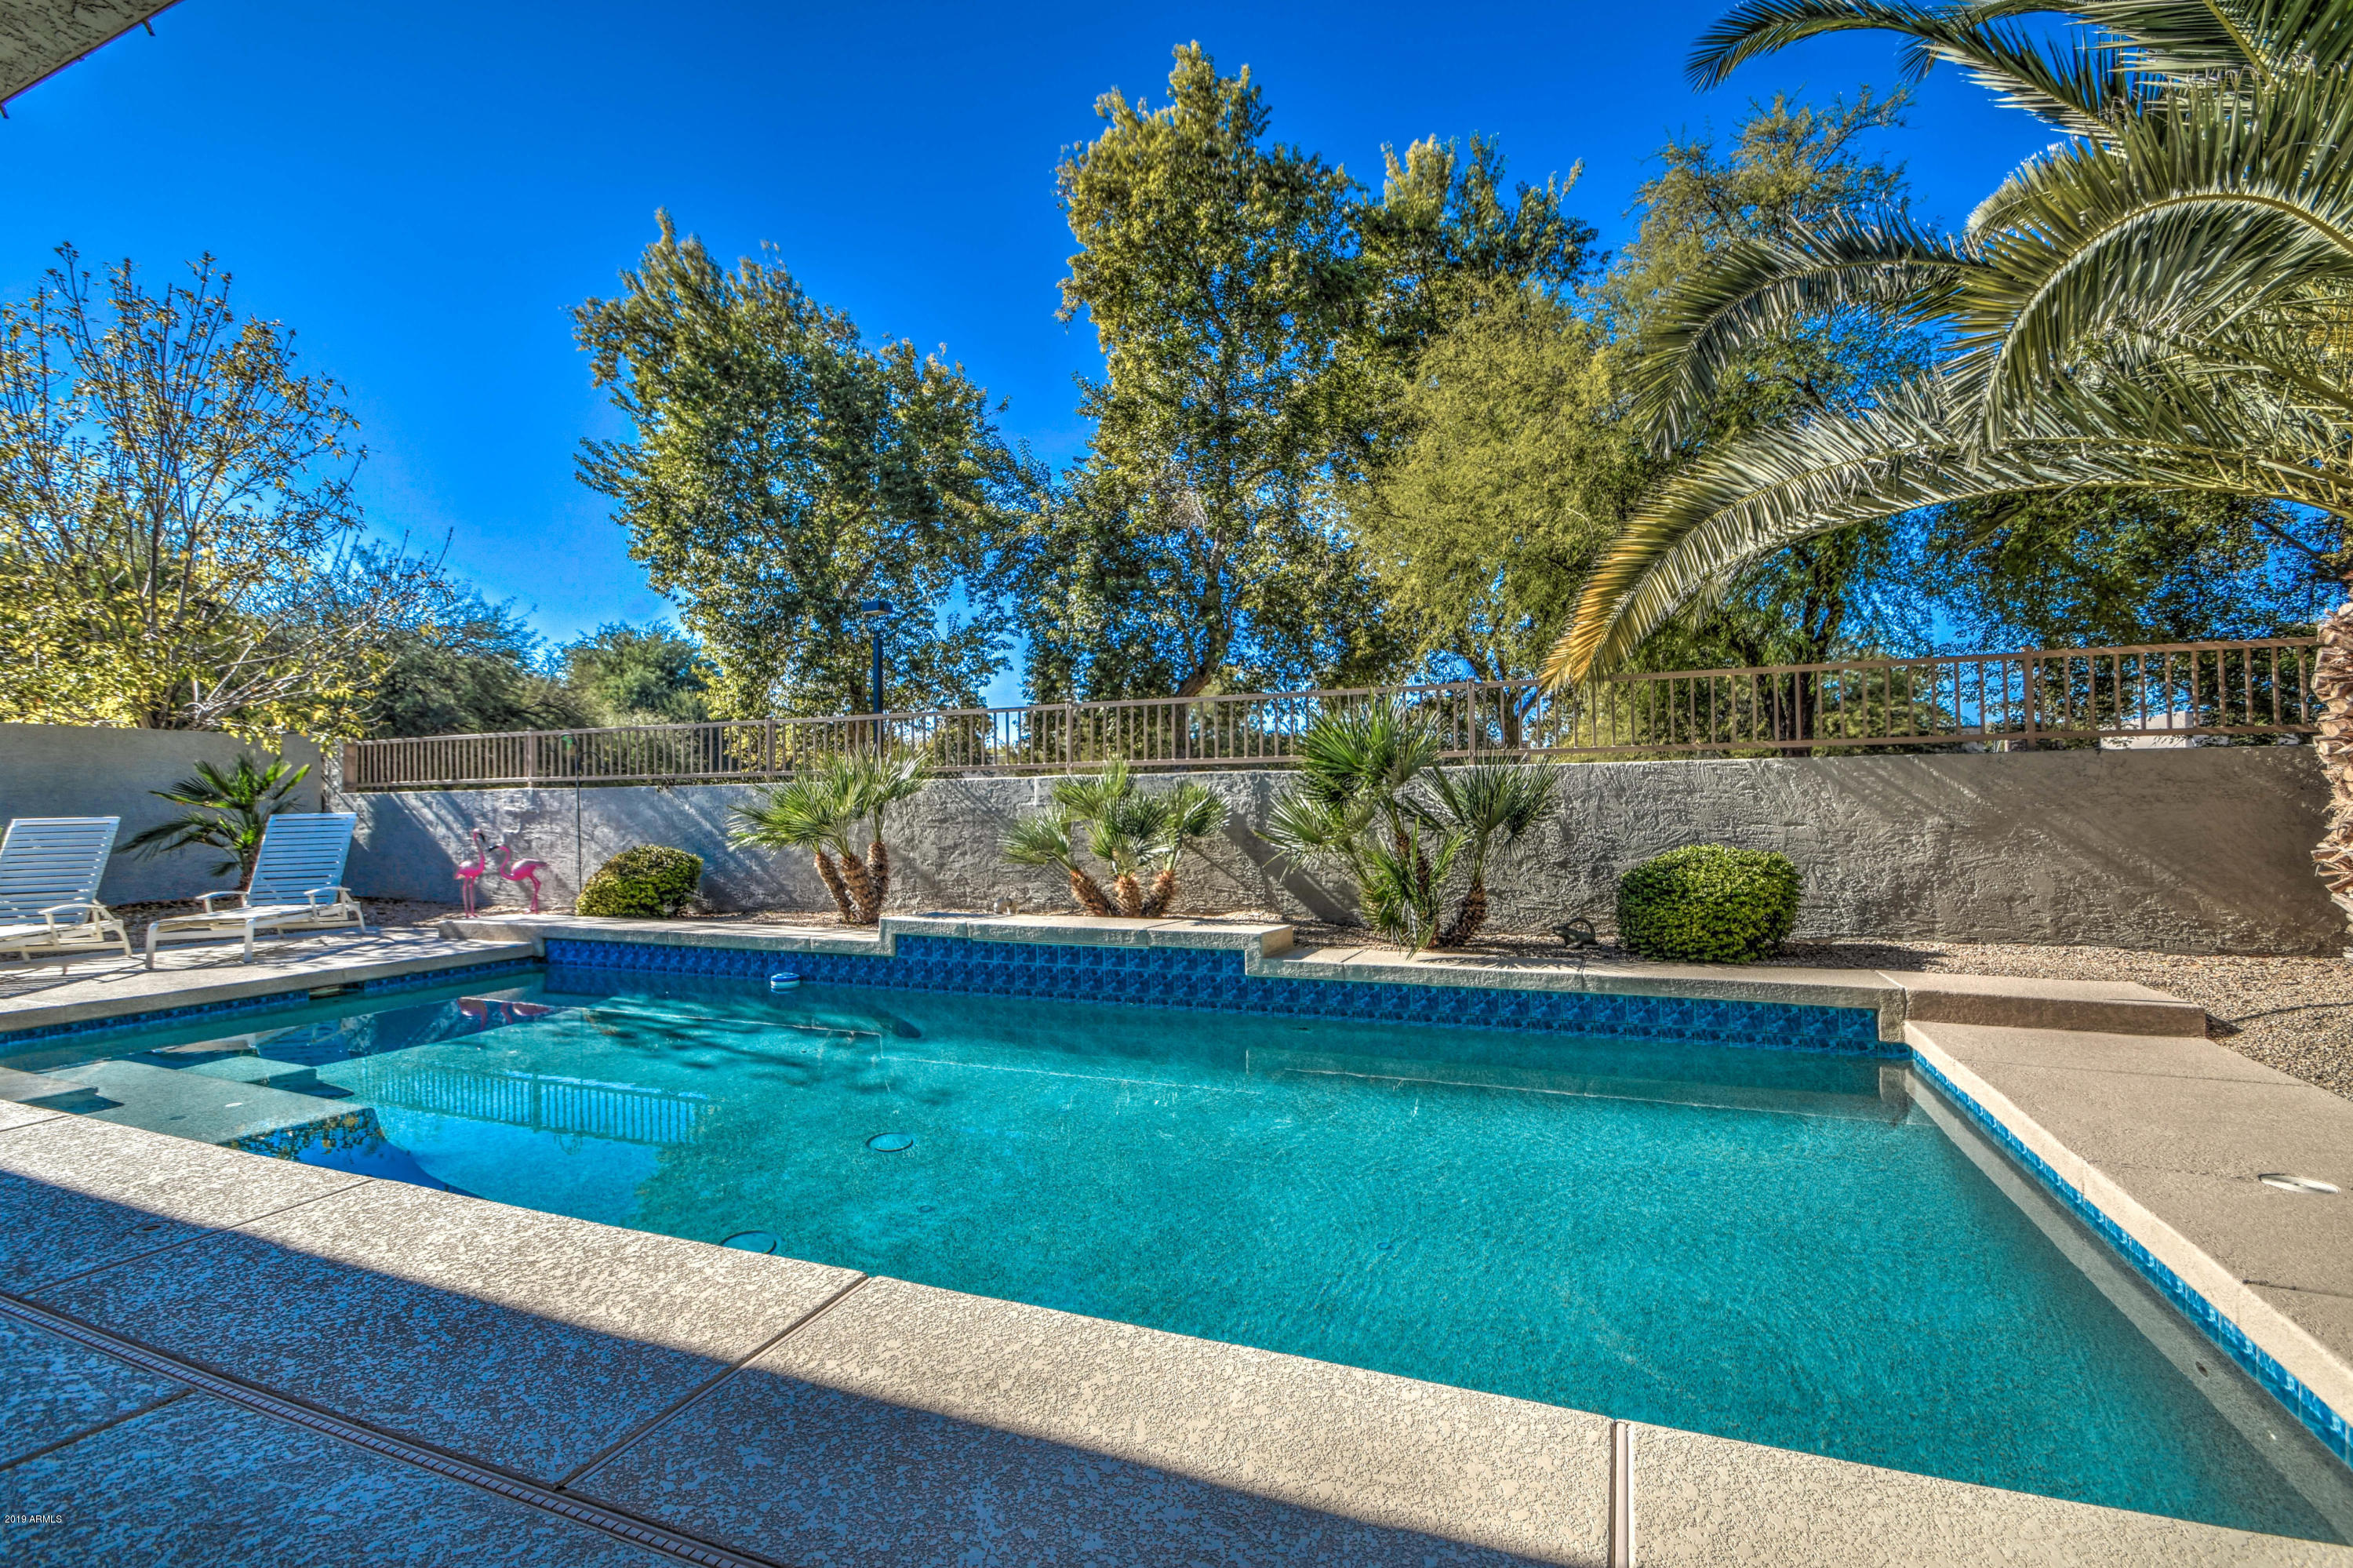 MLS 5863669 2720 S MCCLELLAND Place, Chandler, AZ 85286 Chandler AZ Carino Estates